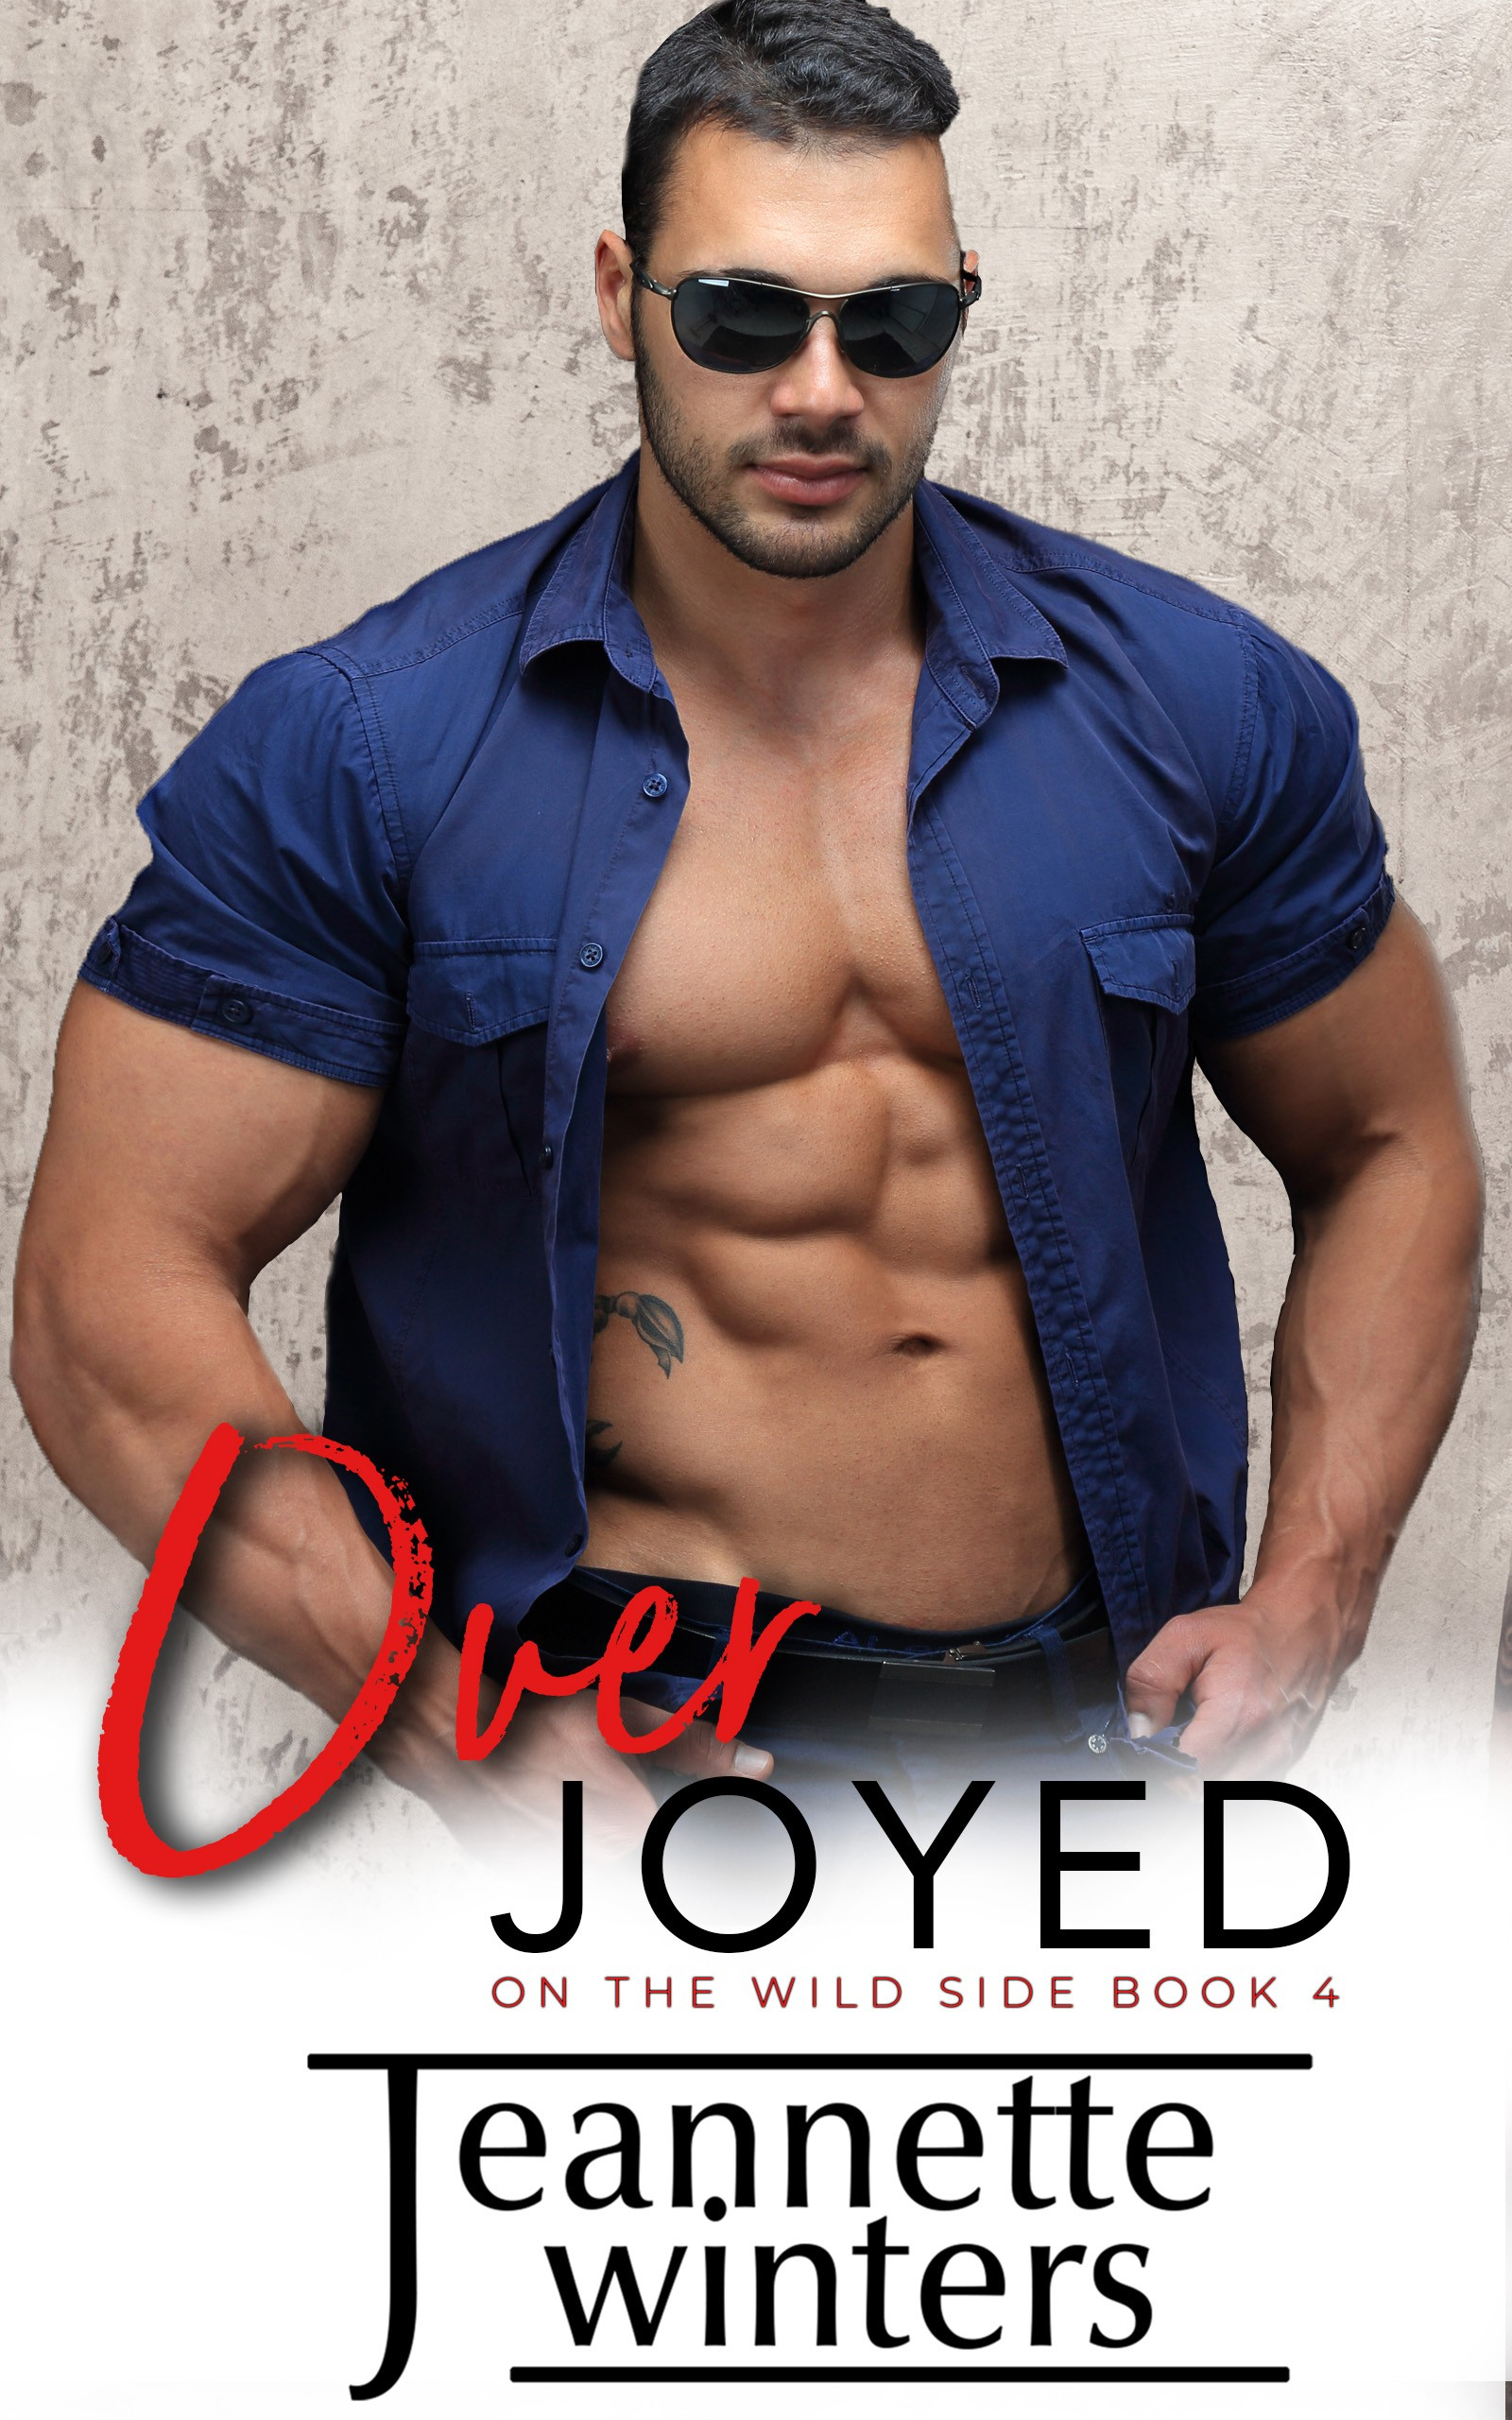 over joyed jeannette winters